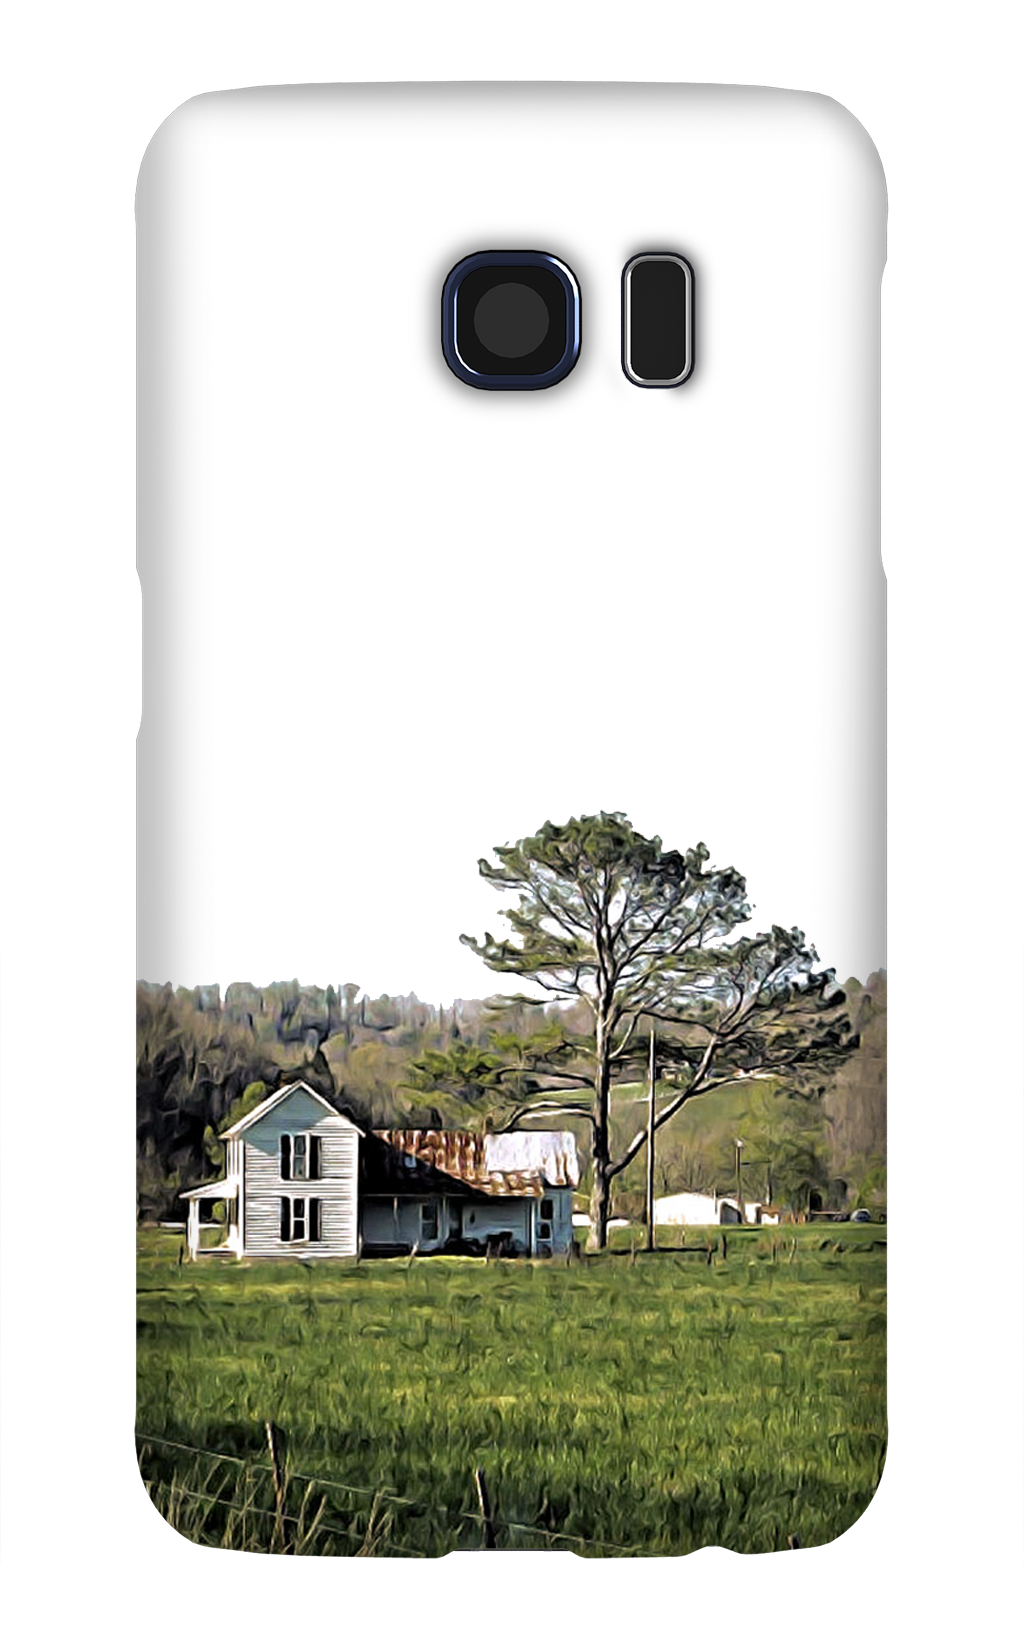 Product, Cellphone Case: Lovely Bones – White farmhouse with rusting roof in field with pine tree